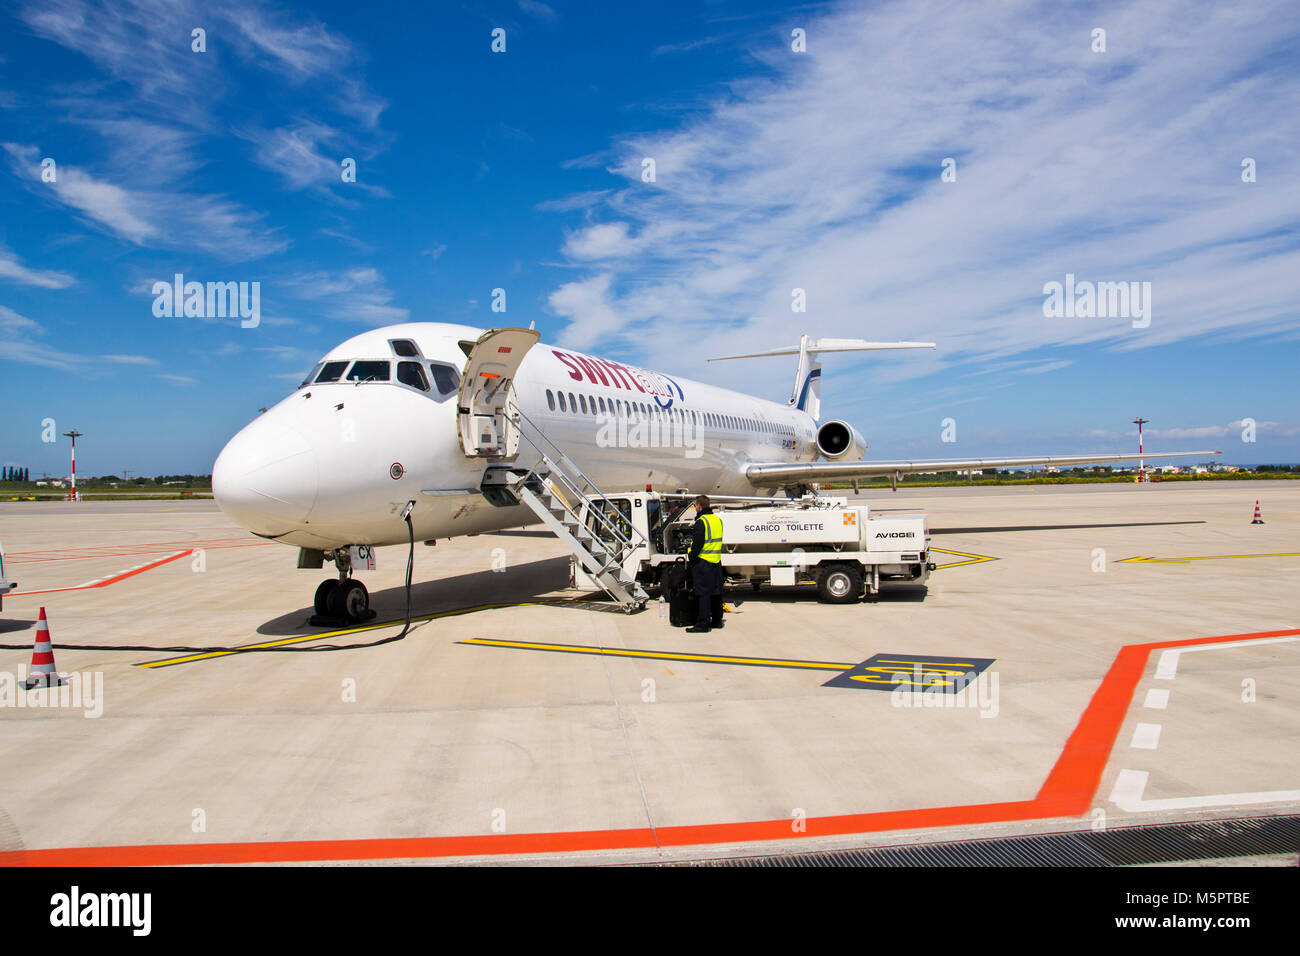 BARI, ITALY -APRIL 14: Tap, Iberia, Easyjet, Swiftair and Ryanair cancelled 59 flights between Spain and Portugal - Stock Image